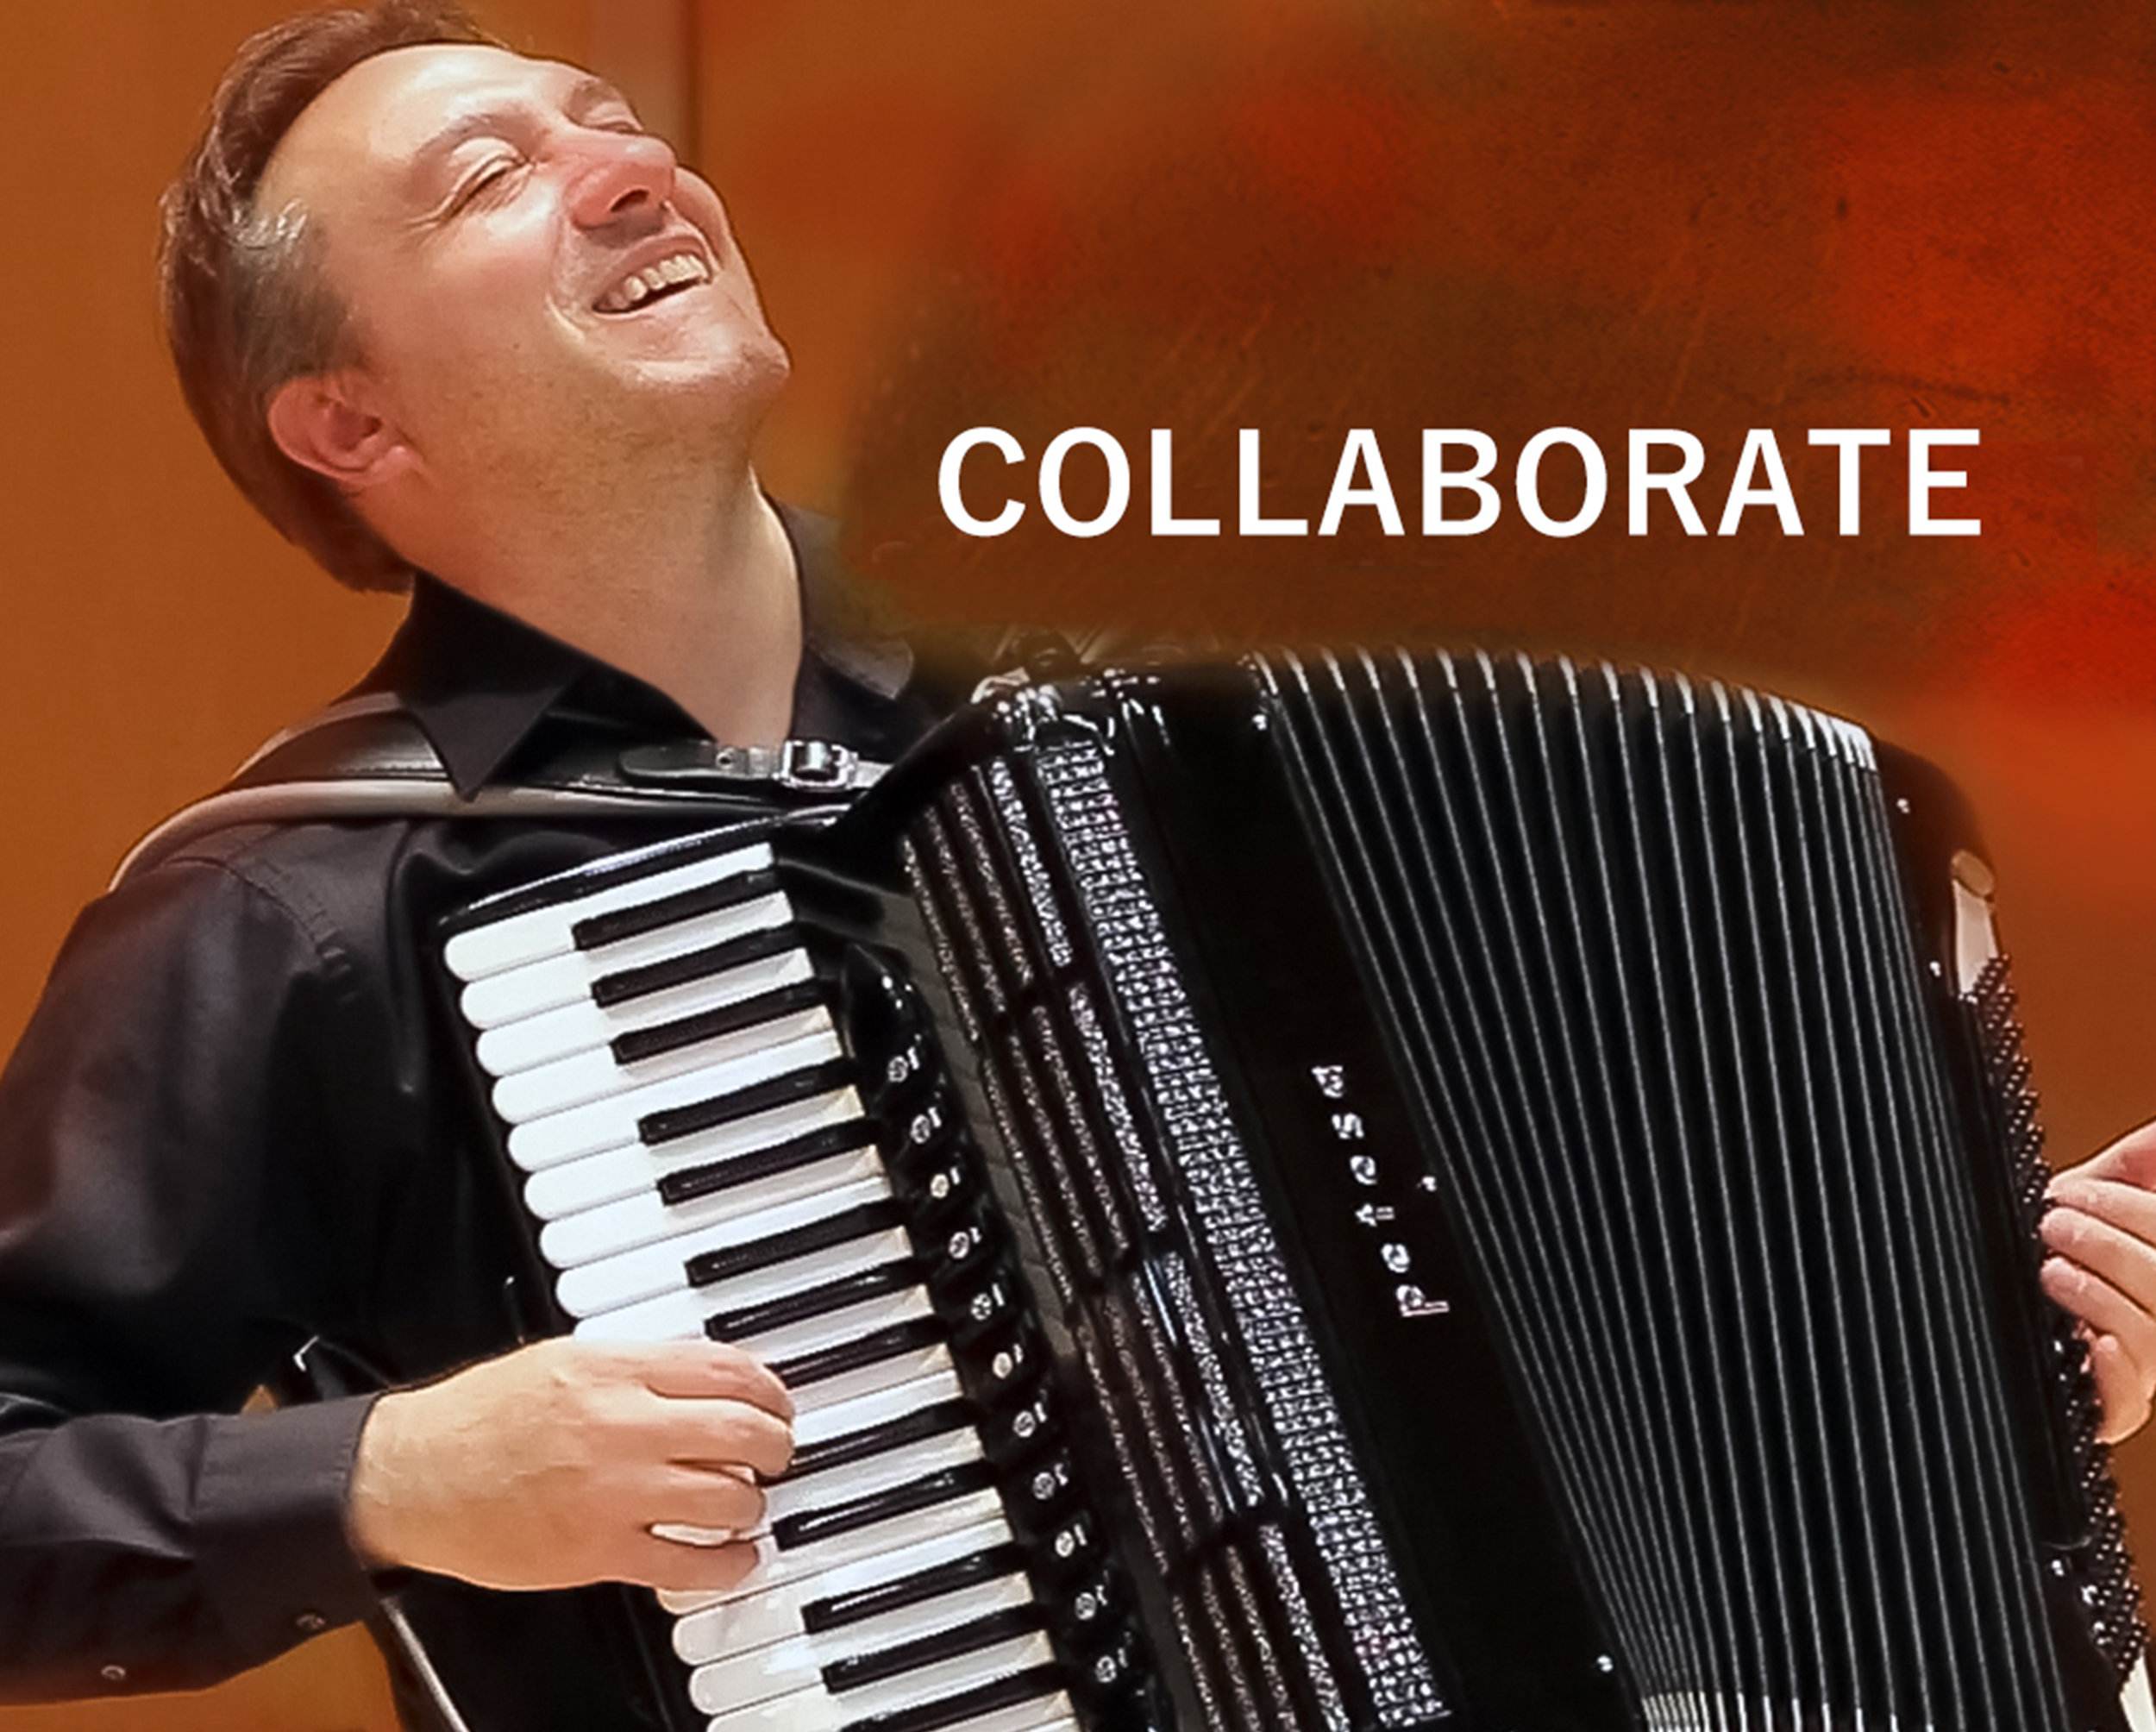 Get started - Collaborate with Milen Slavov, an award-winning accordionist-composer-producer.Get started with your inquiry by filling out the form.Collaboration areas include: artistic, entertainment, educational, audio/video, and content marketing